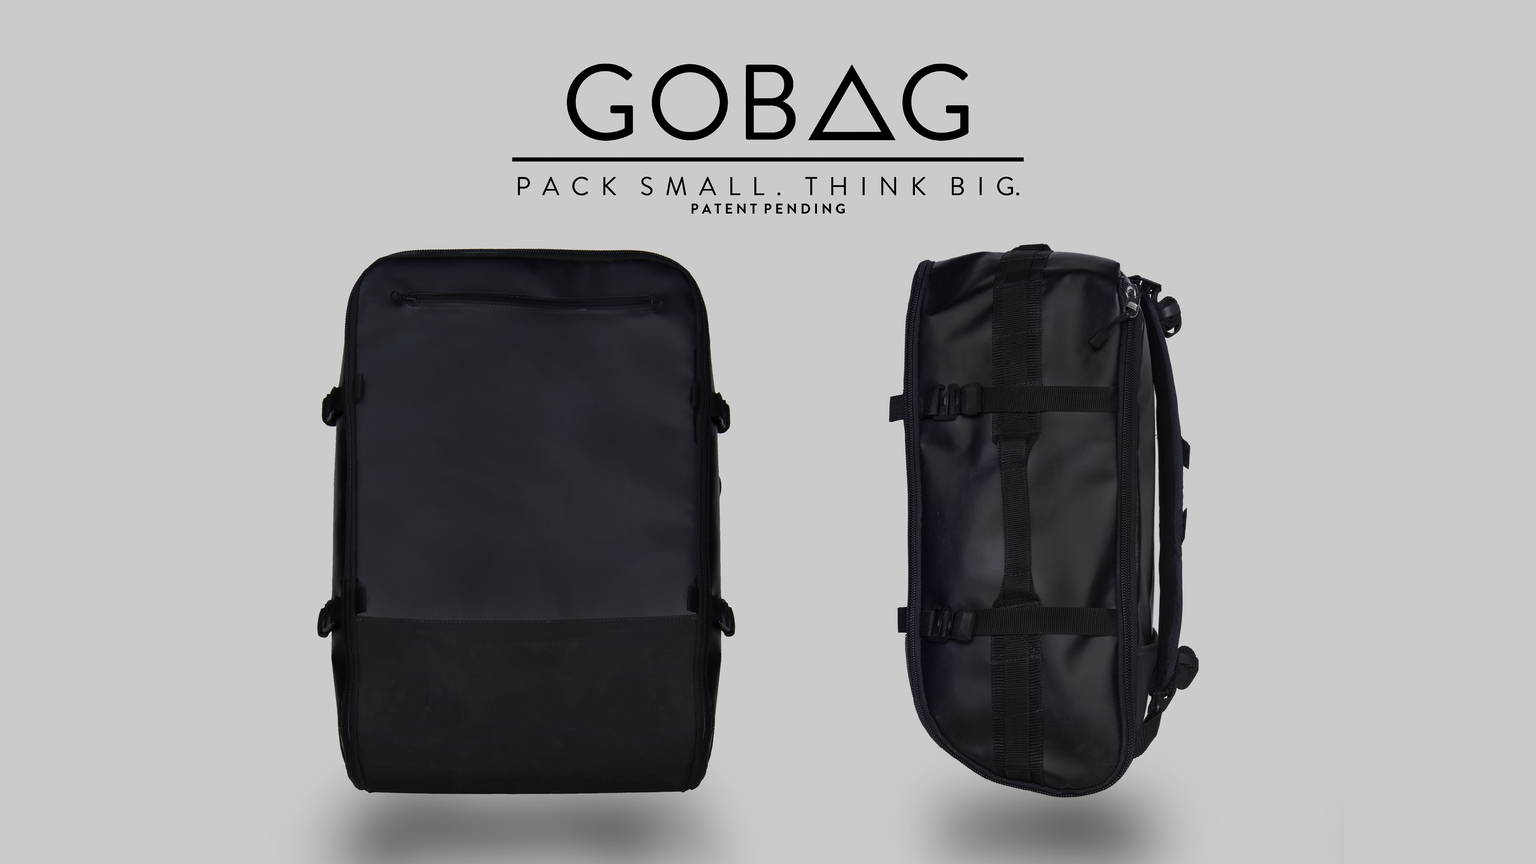 Gobag A Vacuum Compressible Carry On Bag For Any